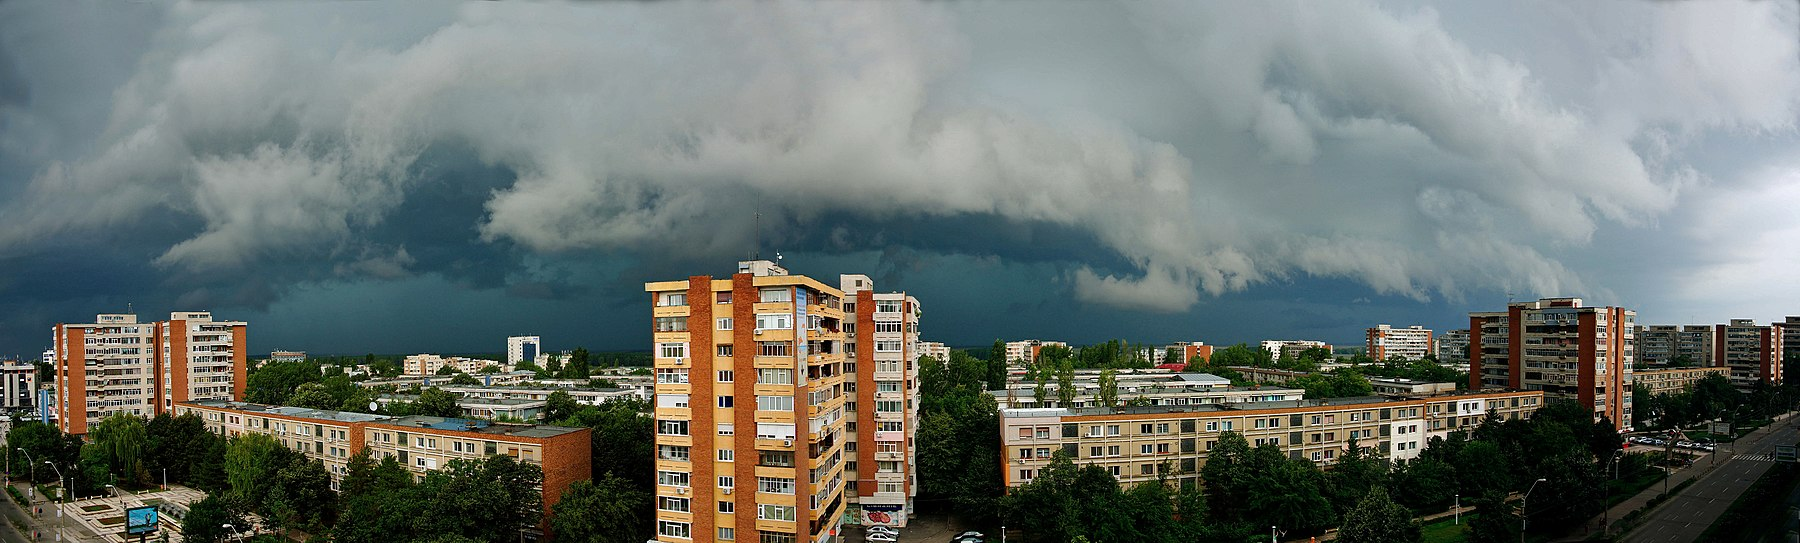 "Attention^^^ ""PANORAMA with storm clouds from GALATI"" - 3 photos - PANORAMA cu nori de furtuna la GALATI - panoramio.jpg"